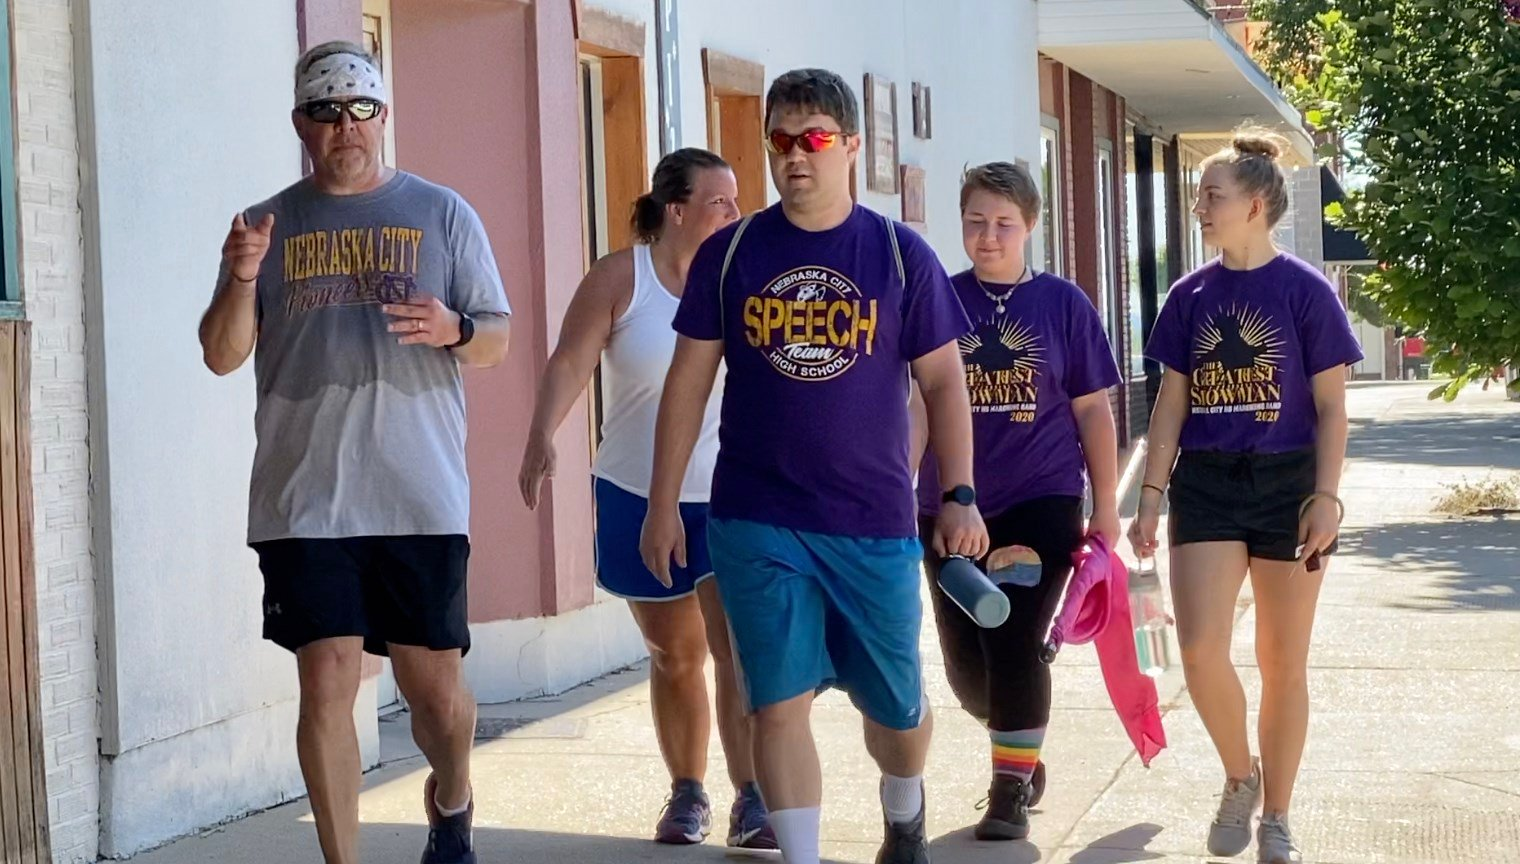 Mr. Hoover sets swift pace for Pioneeer fine arts walk-a-thon